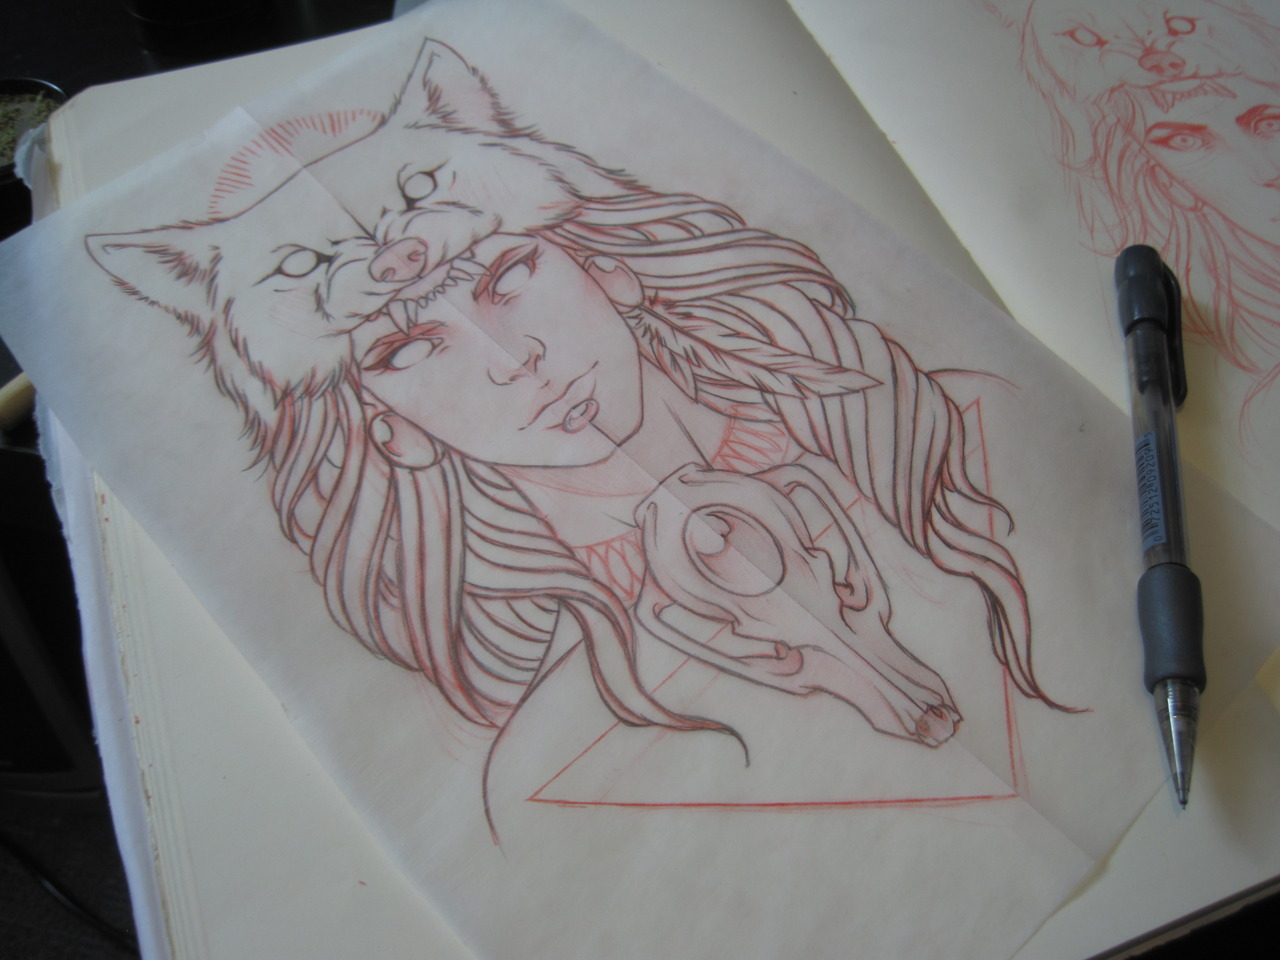 Watching Princess Mononoke and doodling and this happened.